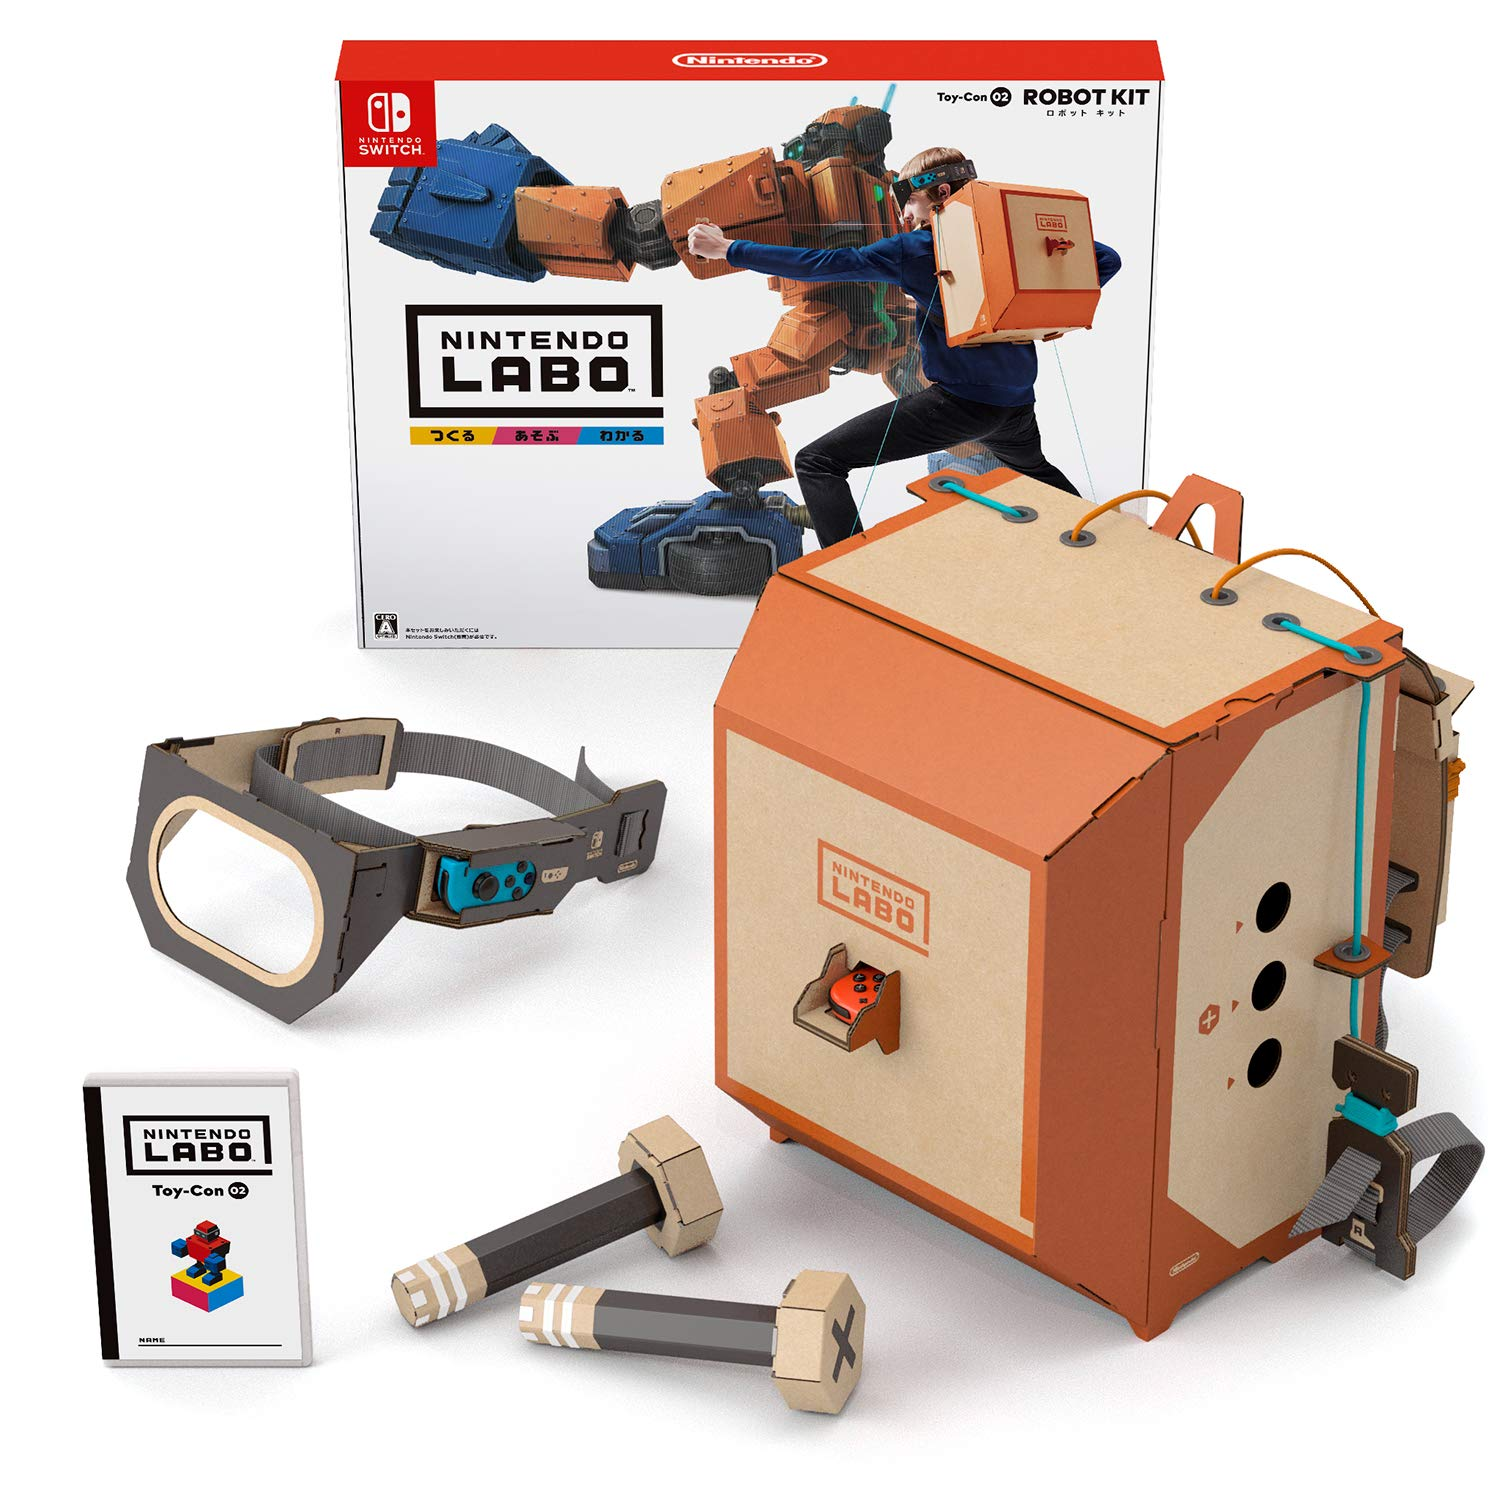 Nintendo Labo Toy-Con 02 Robot Kit – Switch Japanese Ver.